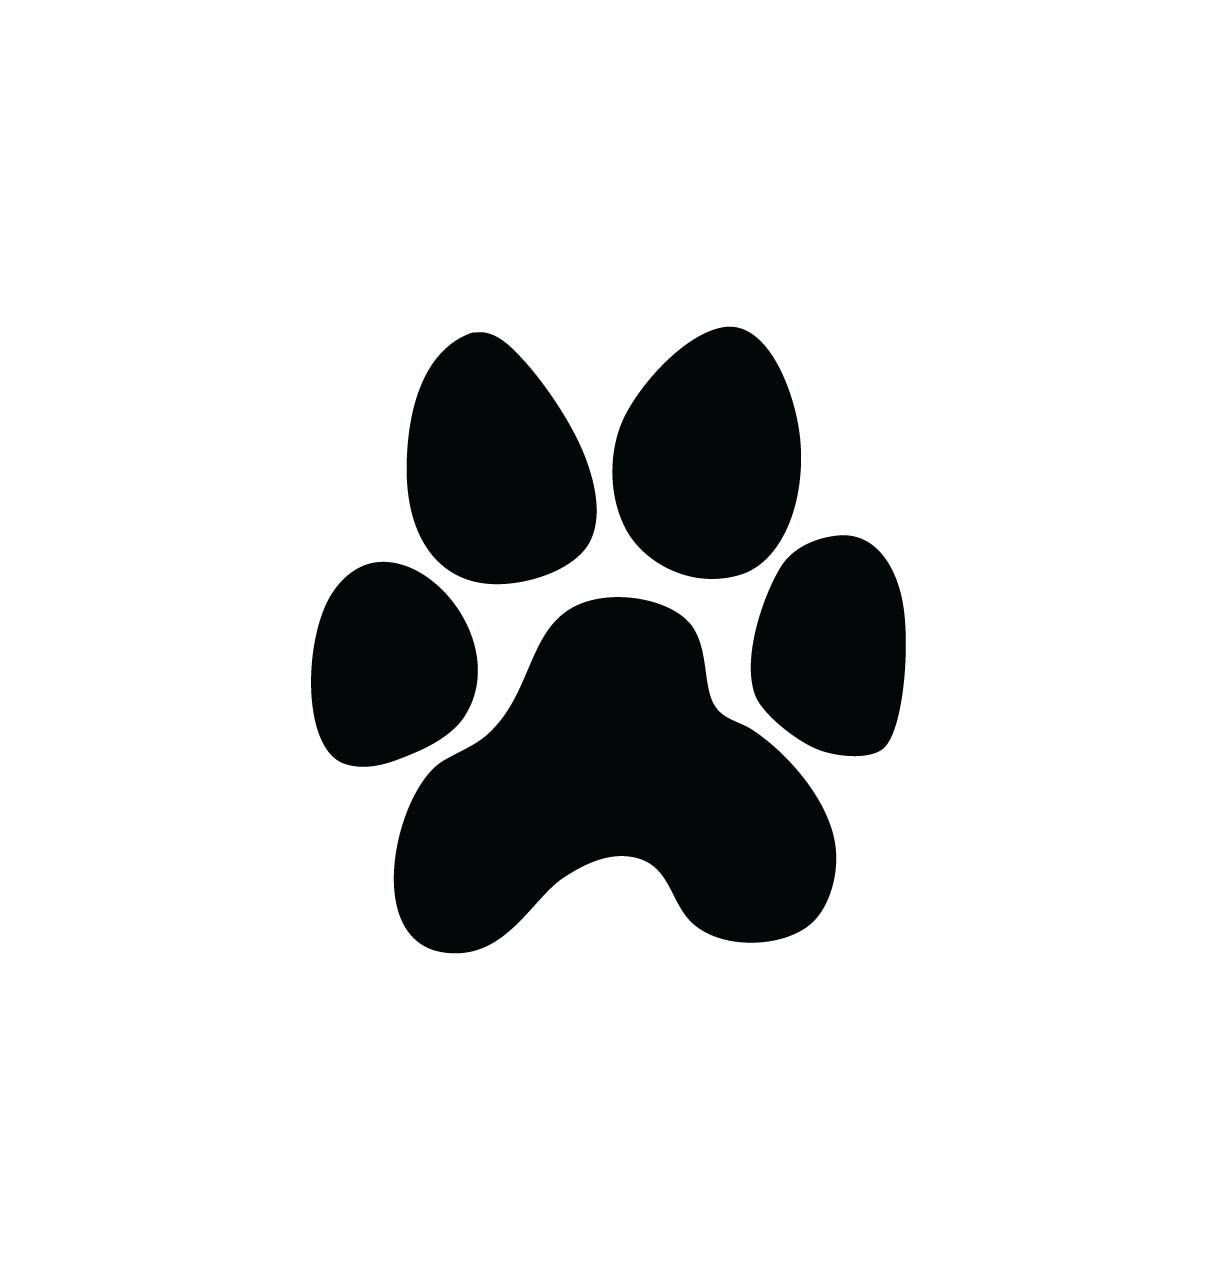 Panther Paw Clip Art Submited-Panther Paw Clip Art Submited-10